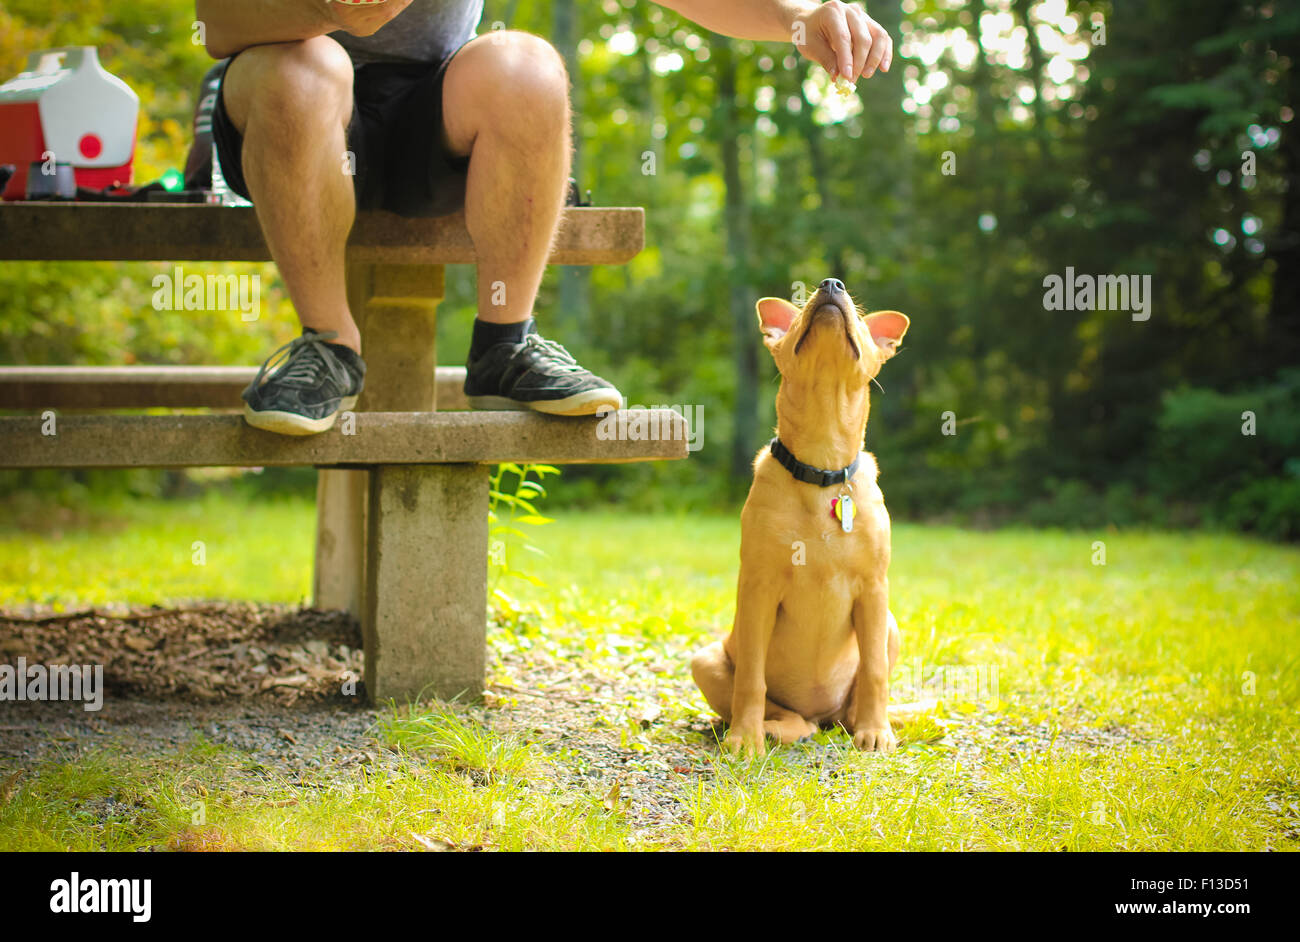 L'alimentation de l'homme à son chien Photo Stock